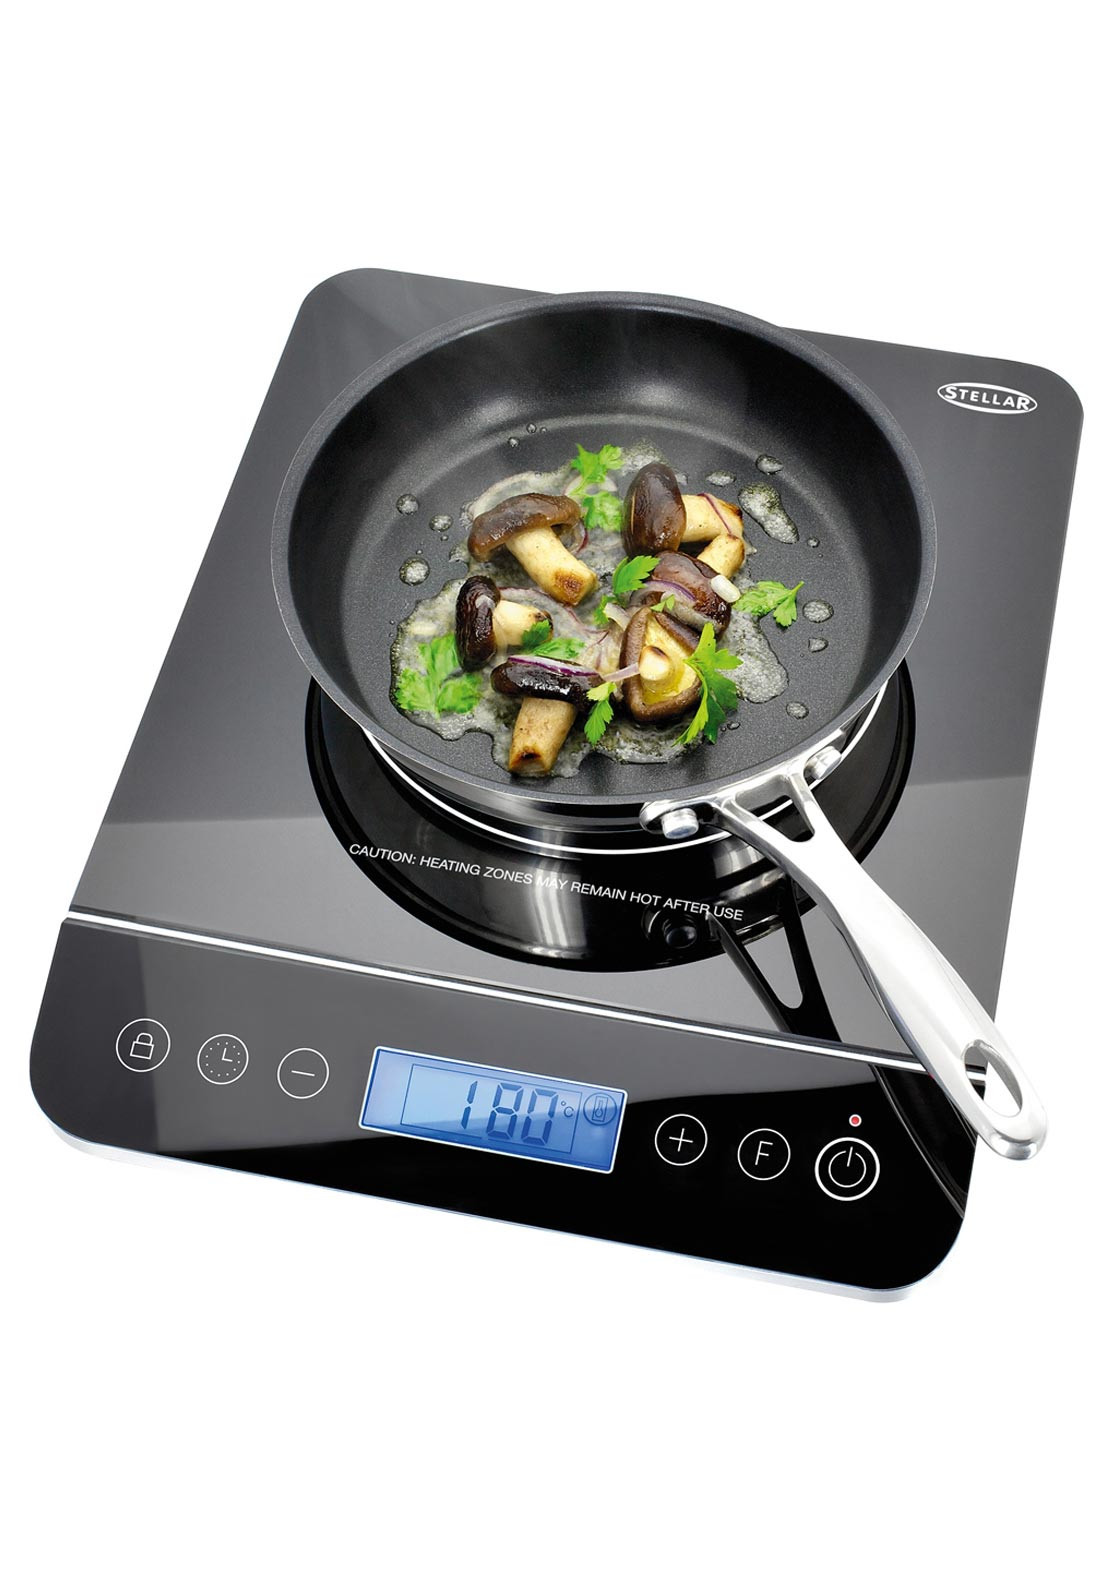 Stellar Touch Control Portable Induction Hob